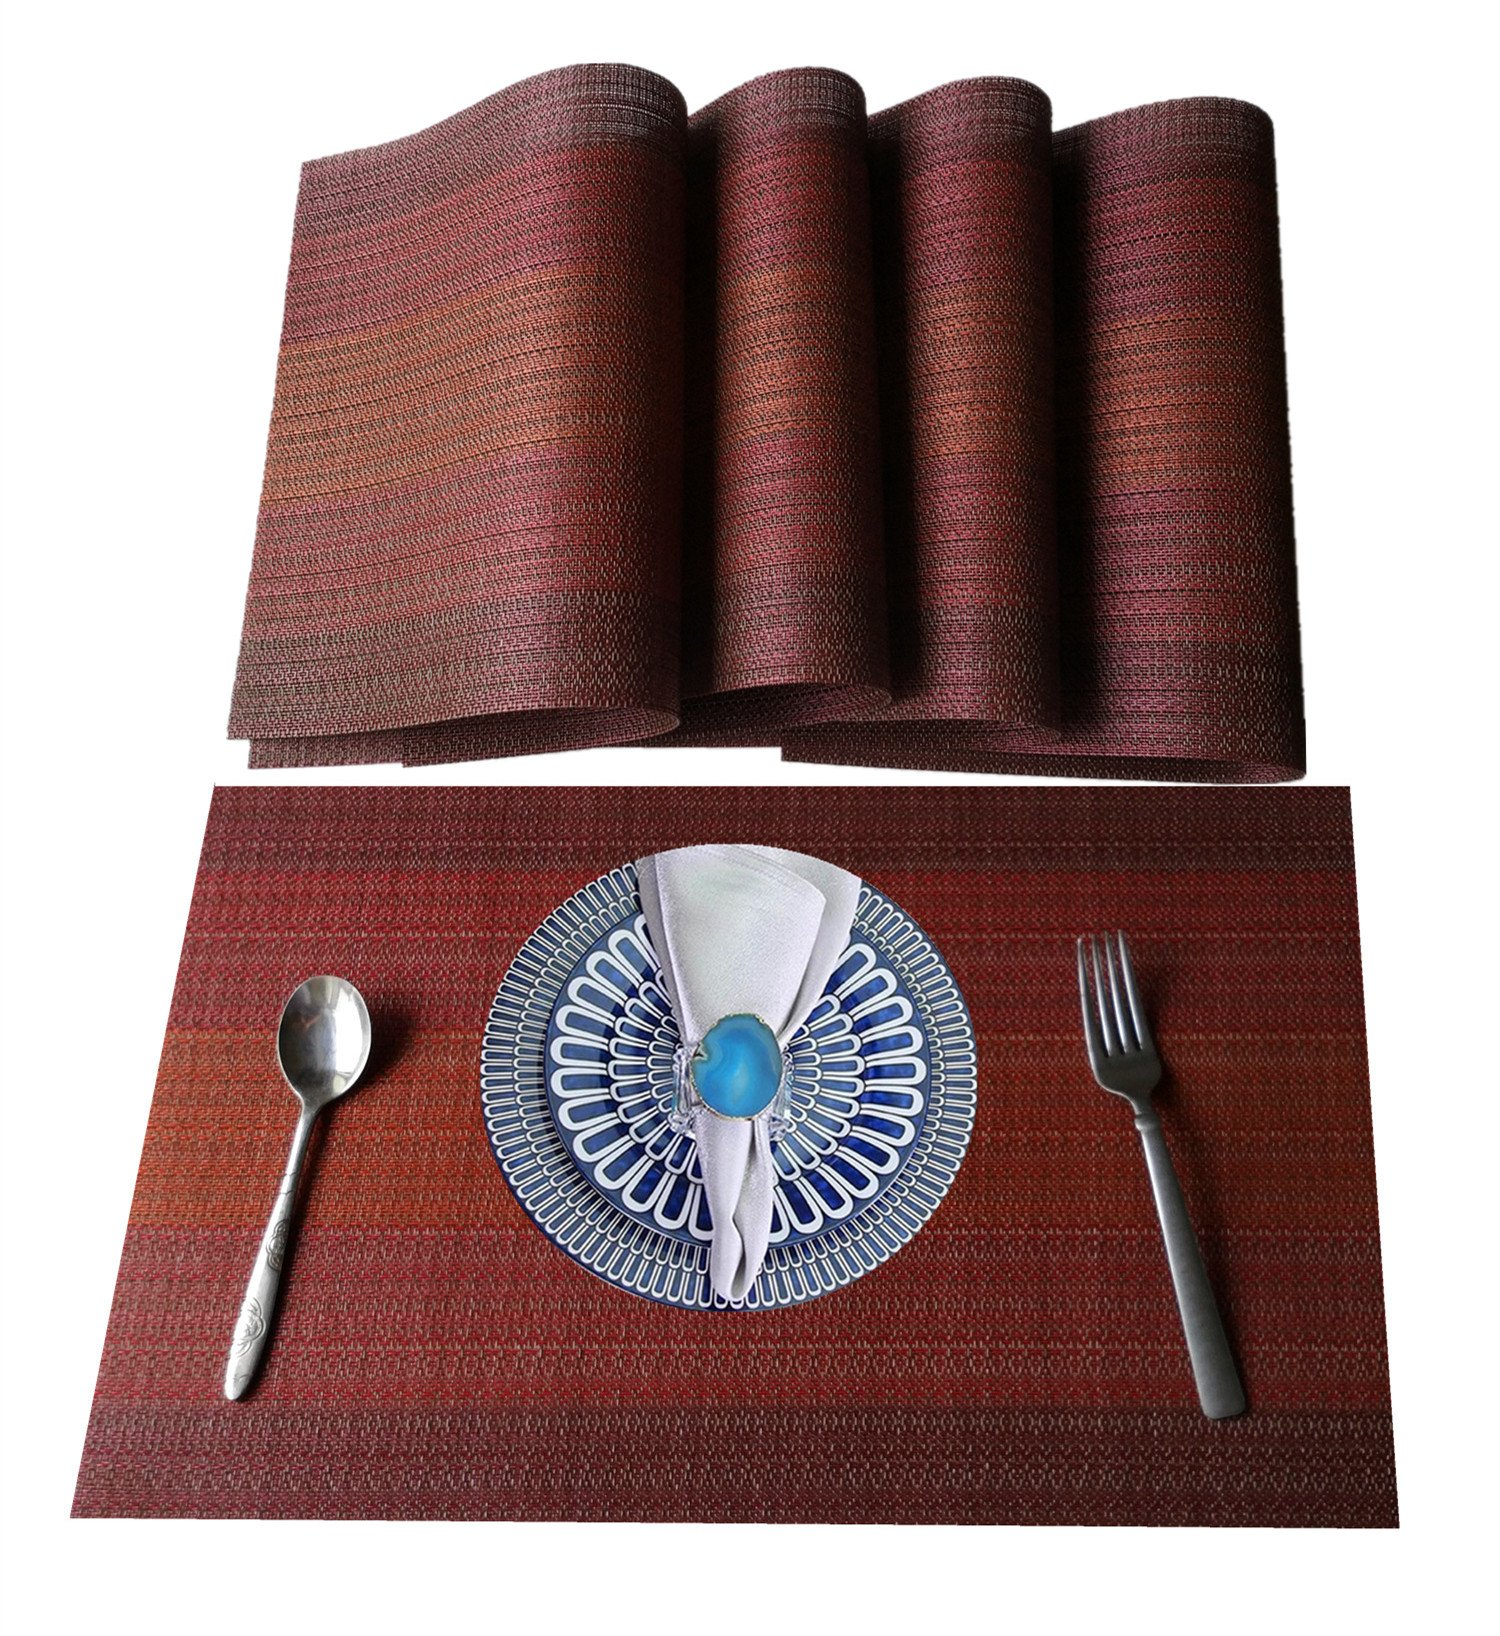 """WANGCHAO Placemats Set of 8 Heat Insulation Stain Resistant Placemat Dining Table Durable Crossweave Woven Vinyl Kitchen Table Mats Placemat (Ombre red, Set of 8) - Woven Vinyl/crossweave,PACKAGE Include 8 pcs of placemats,each measures:18""""X12""""(45cmX30cm); NEW DESIGN:Top-grade exquisite design placemats feel good would be the best decoration and Protection to your tables if yo have children. EASY CARE:Washable table placemat,non-fading,non-stain,Not mildew,Wipe Clean,and dries very quickly; - placemats, kitchen-dining-room-table-linens, kitchen-dining-room - 91rVqRC 6YL -"""